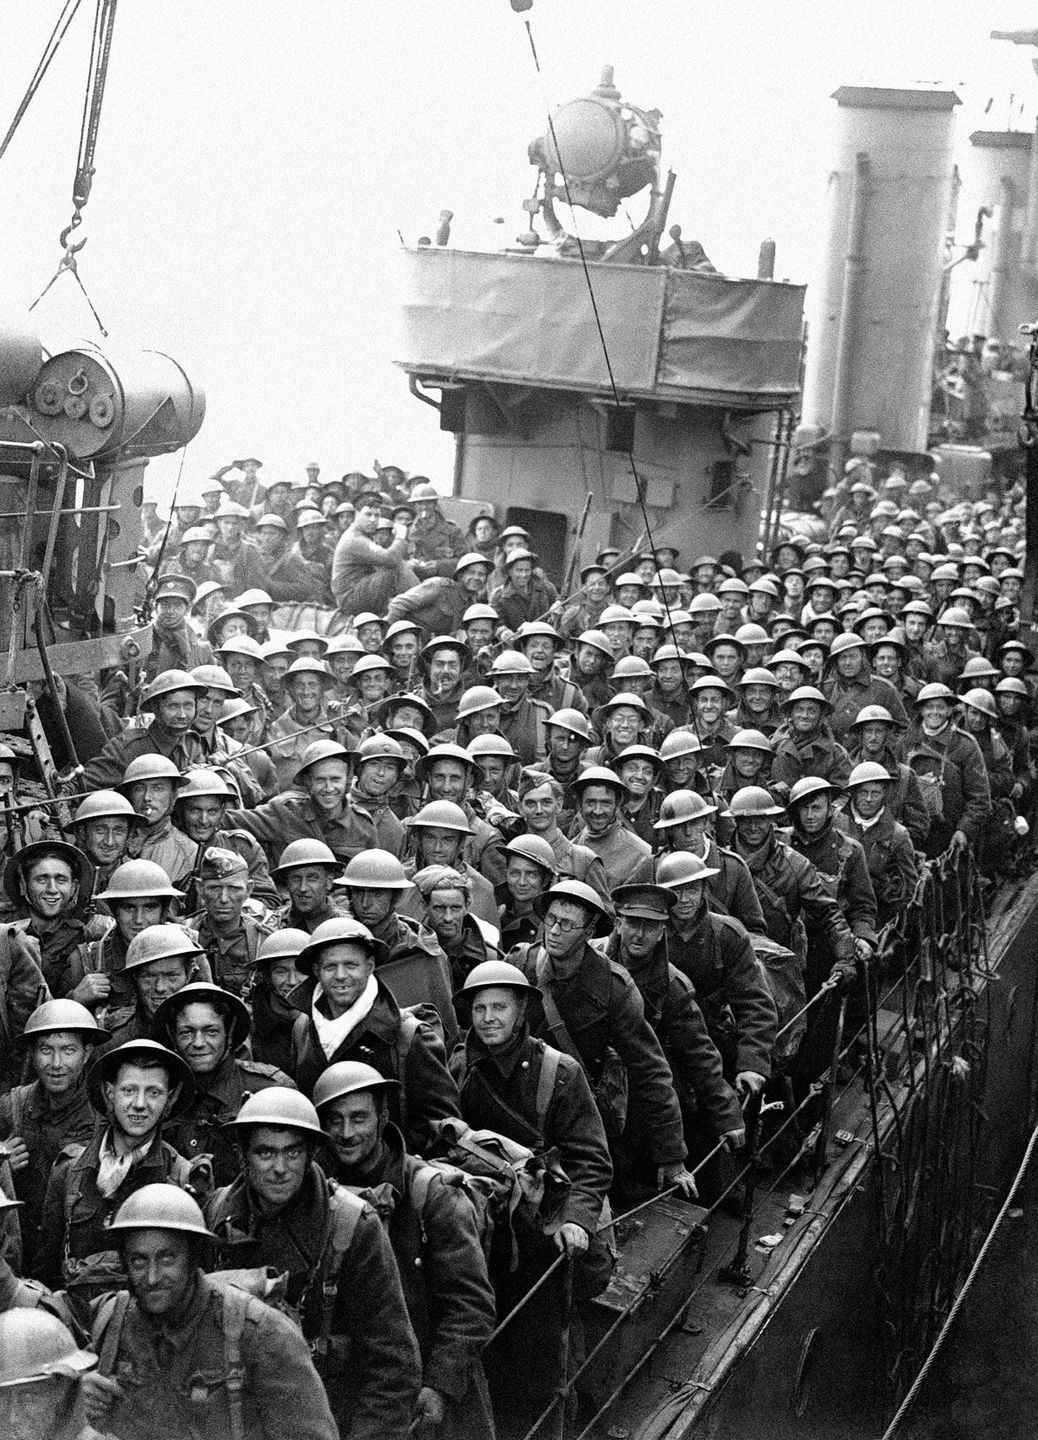 British Expeditionary Forces safely arrive back in England